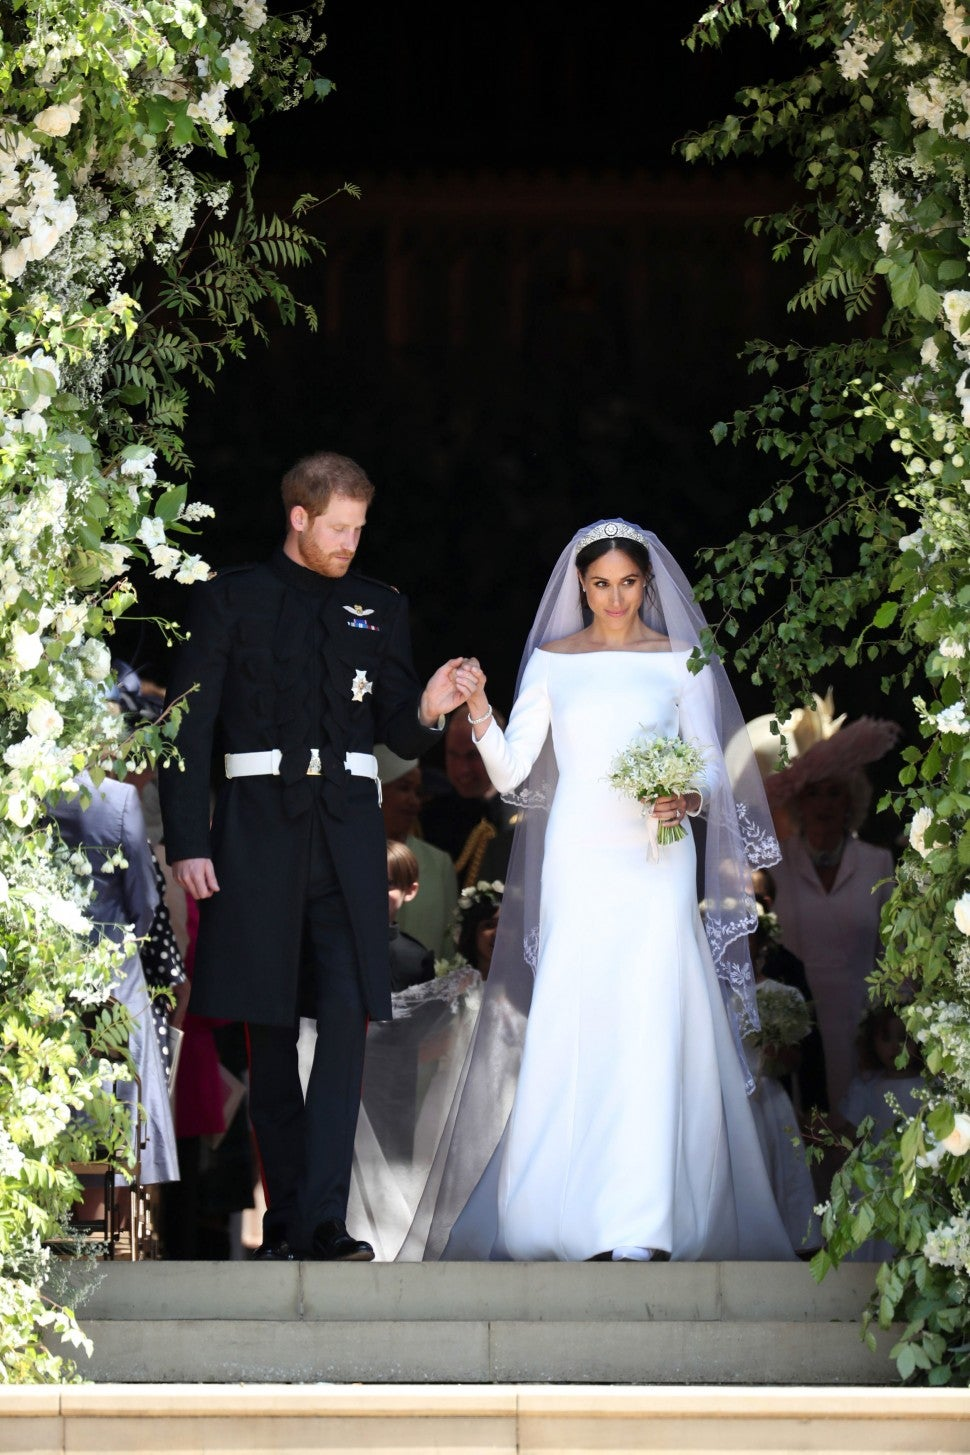 Prince Harry and Meghan Markle outside the chapel